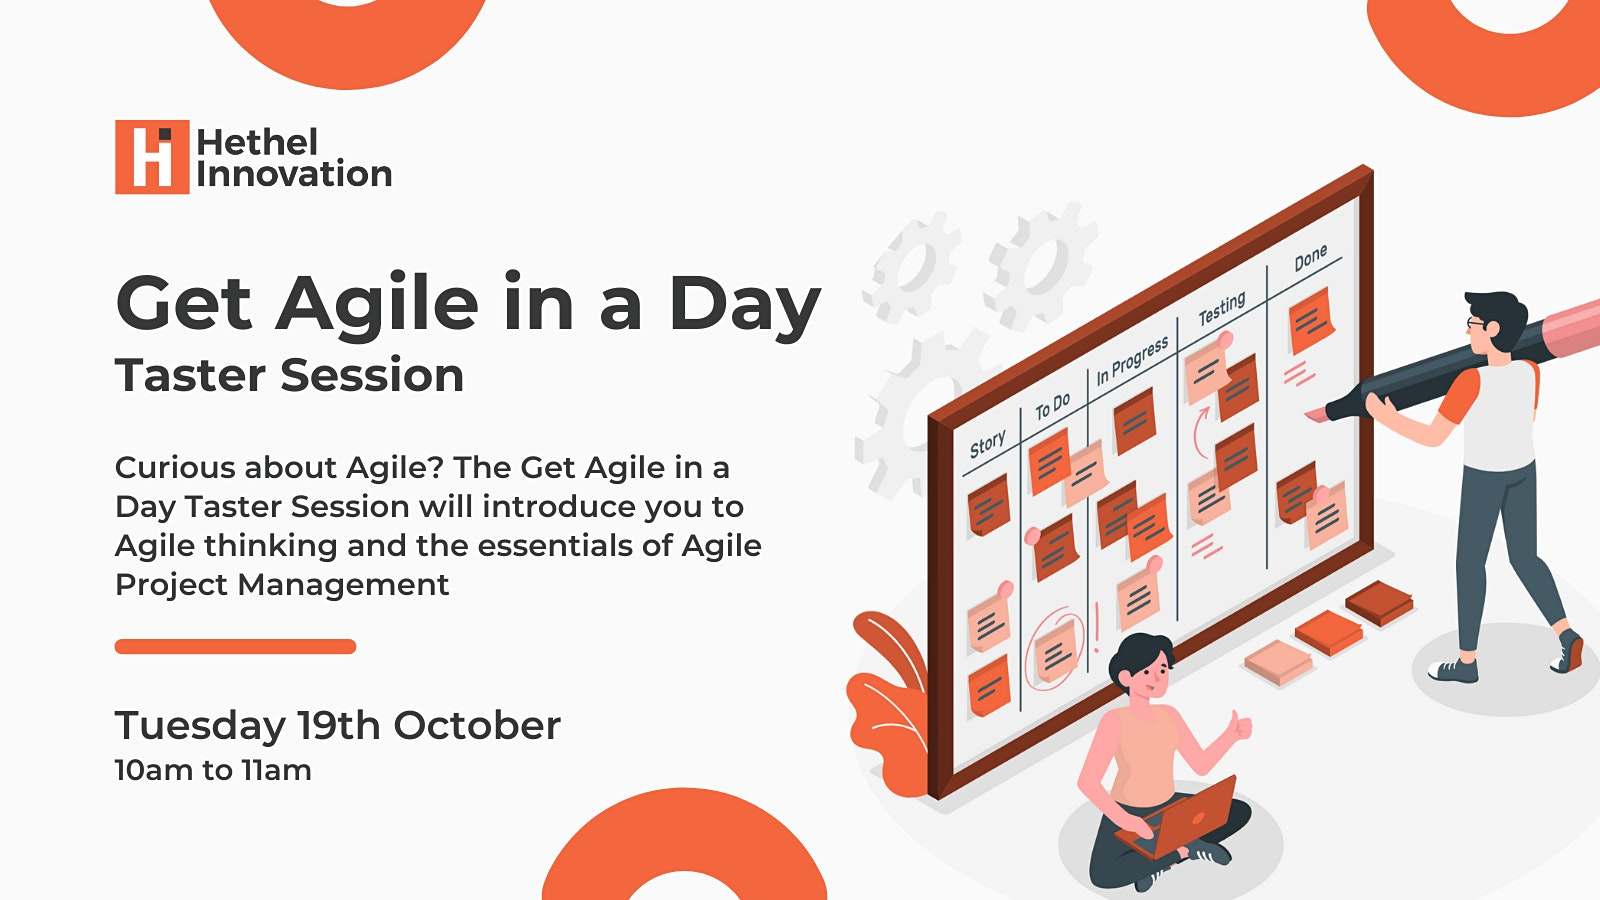 Get Agile in a Day: Taster Session